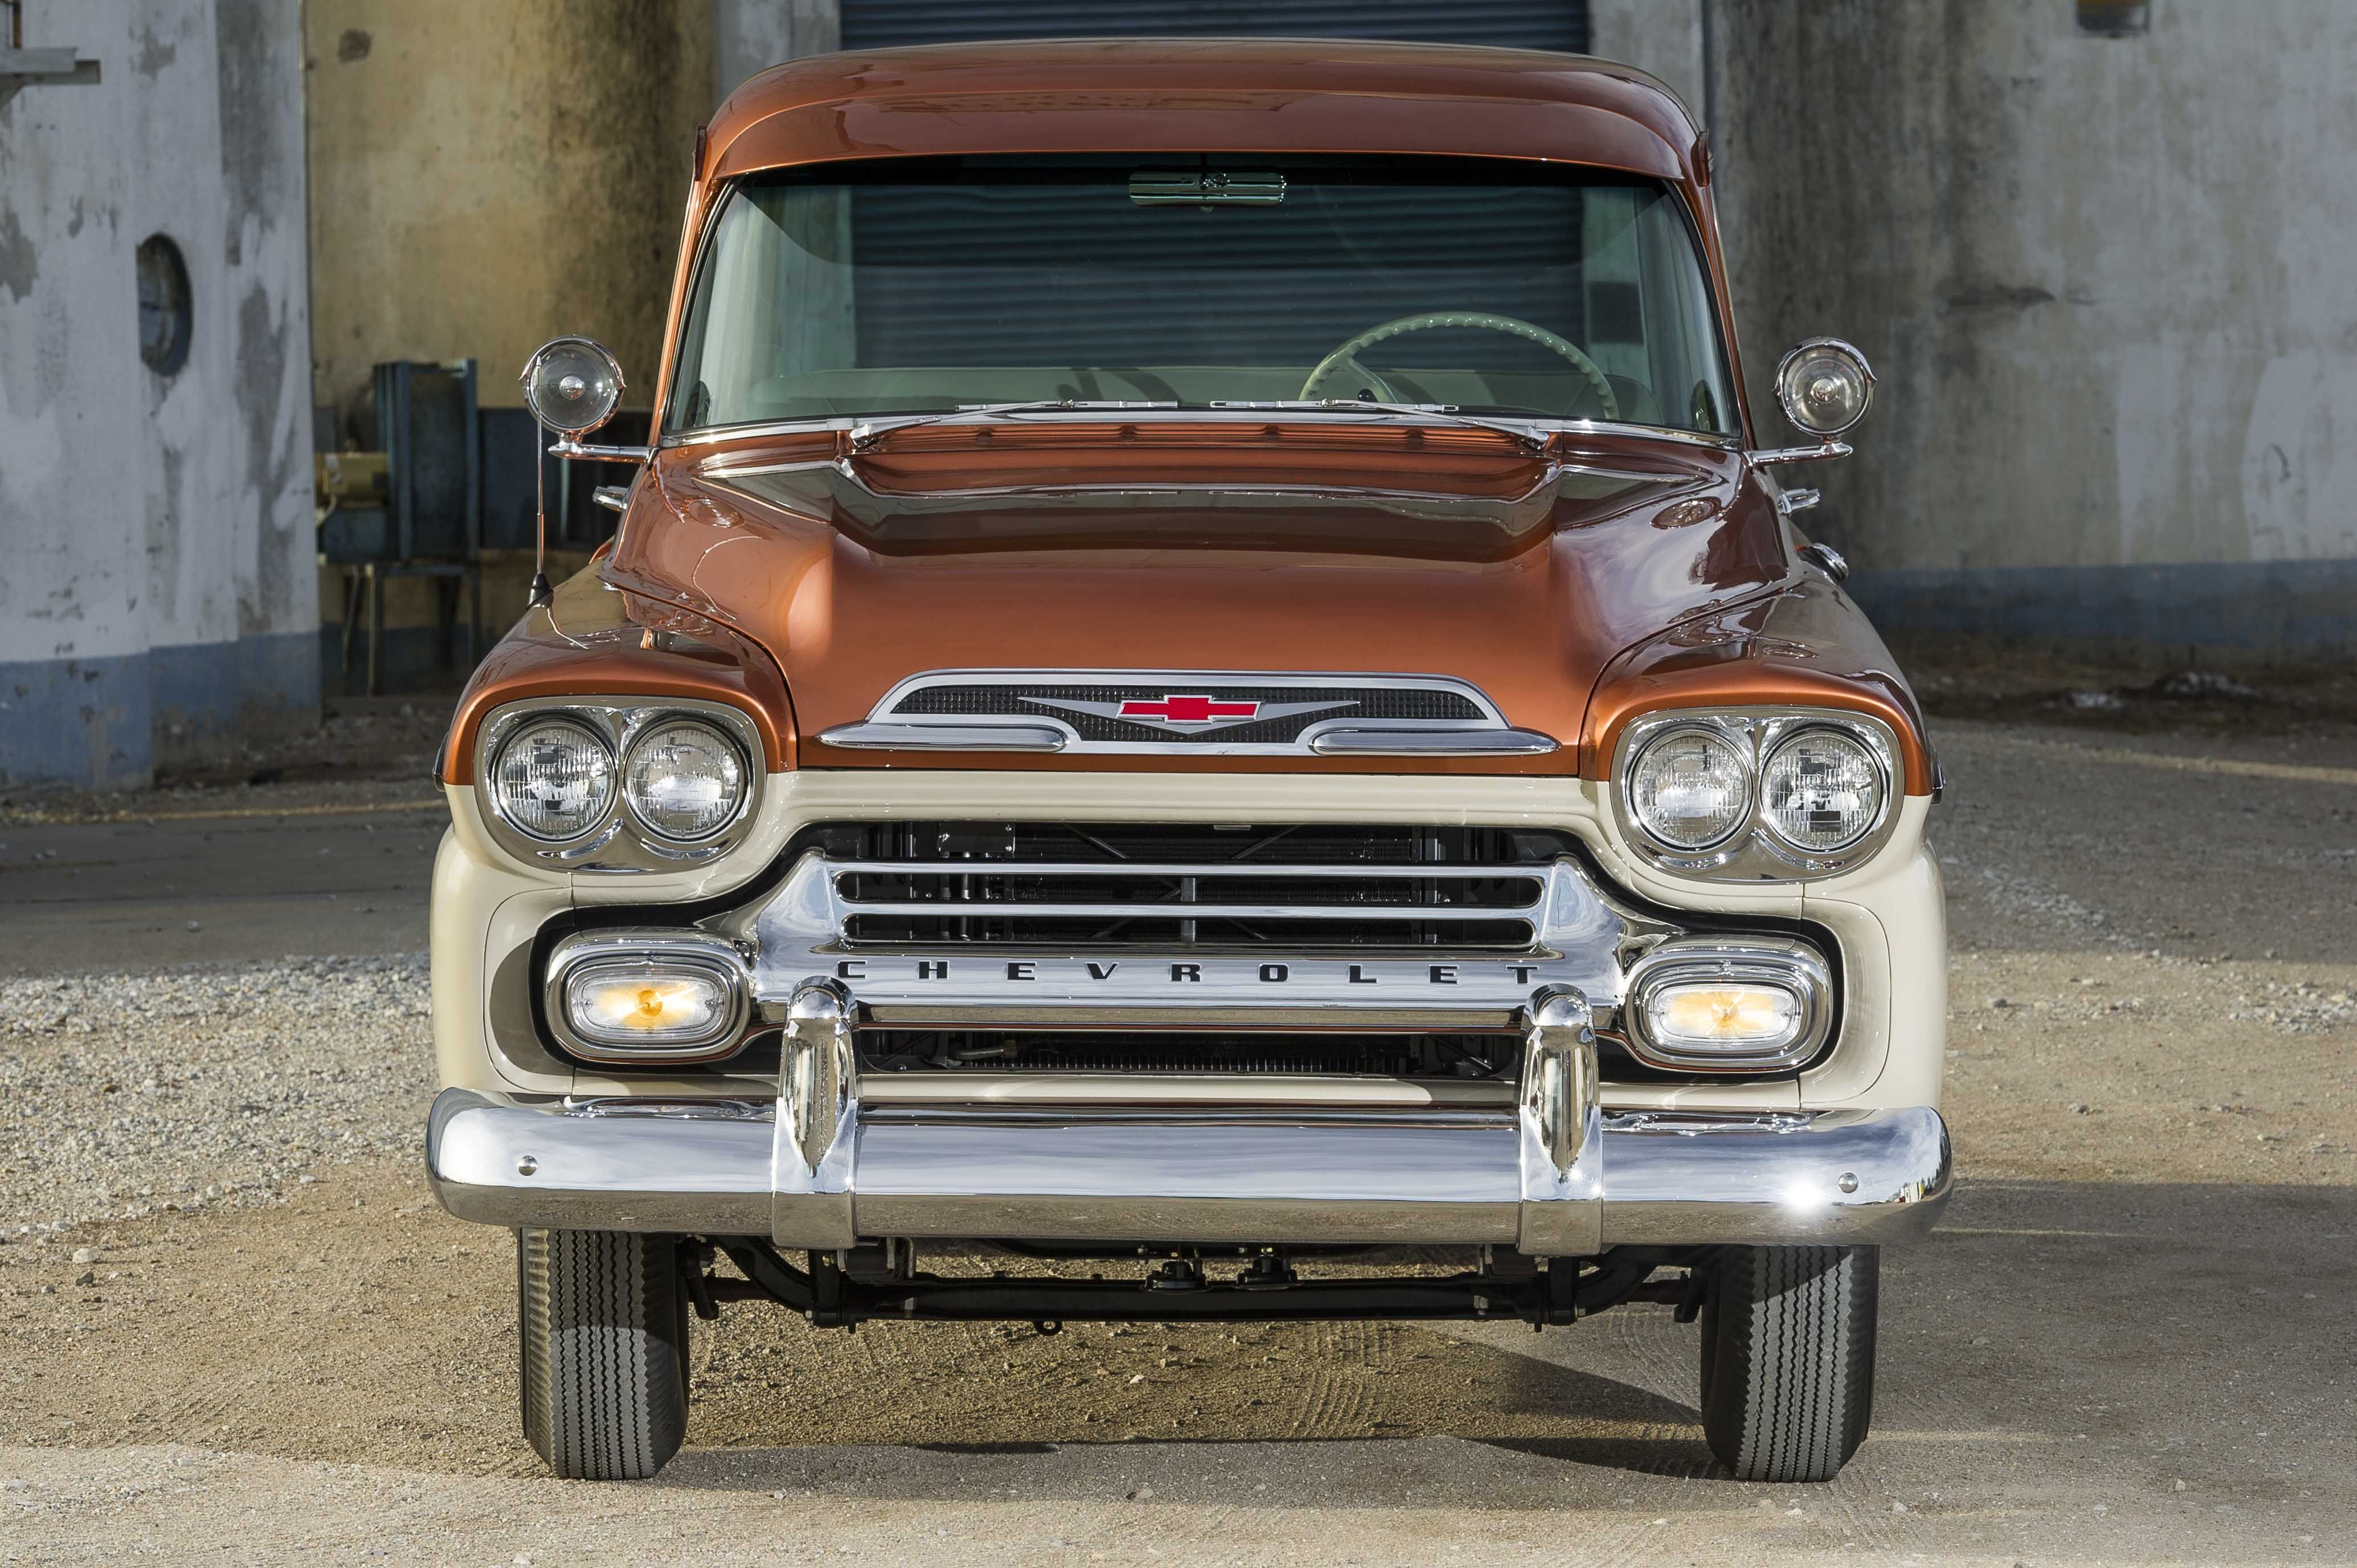 RT @gmbeatonline: A Brief History of Chevrolet Pickups: 1941 to 1959 ...